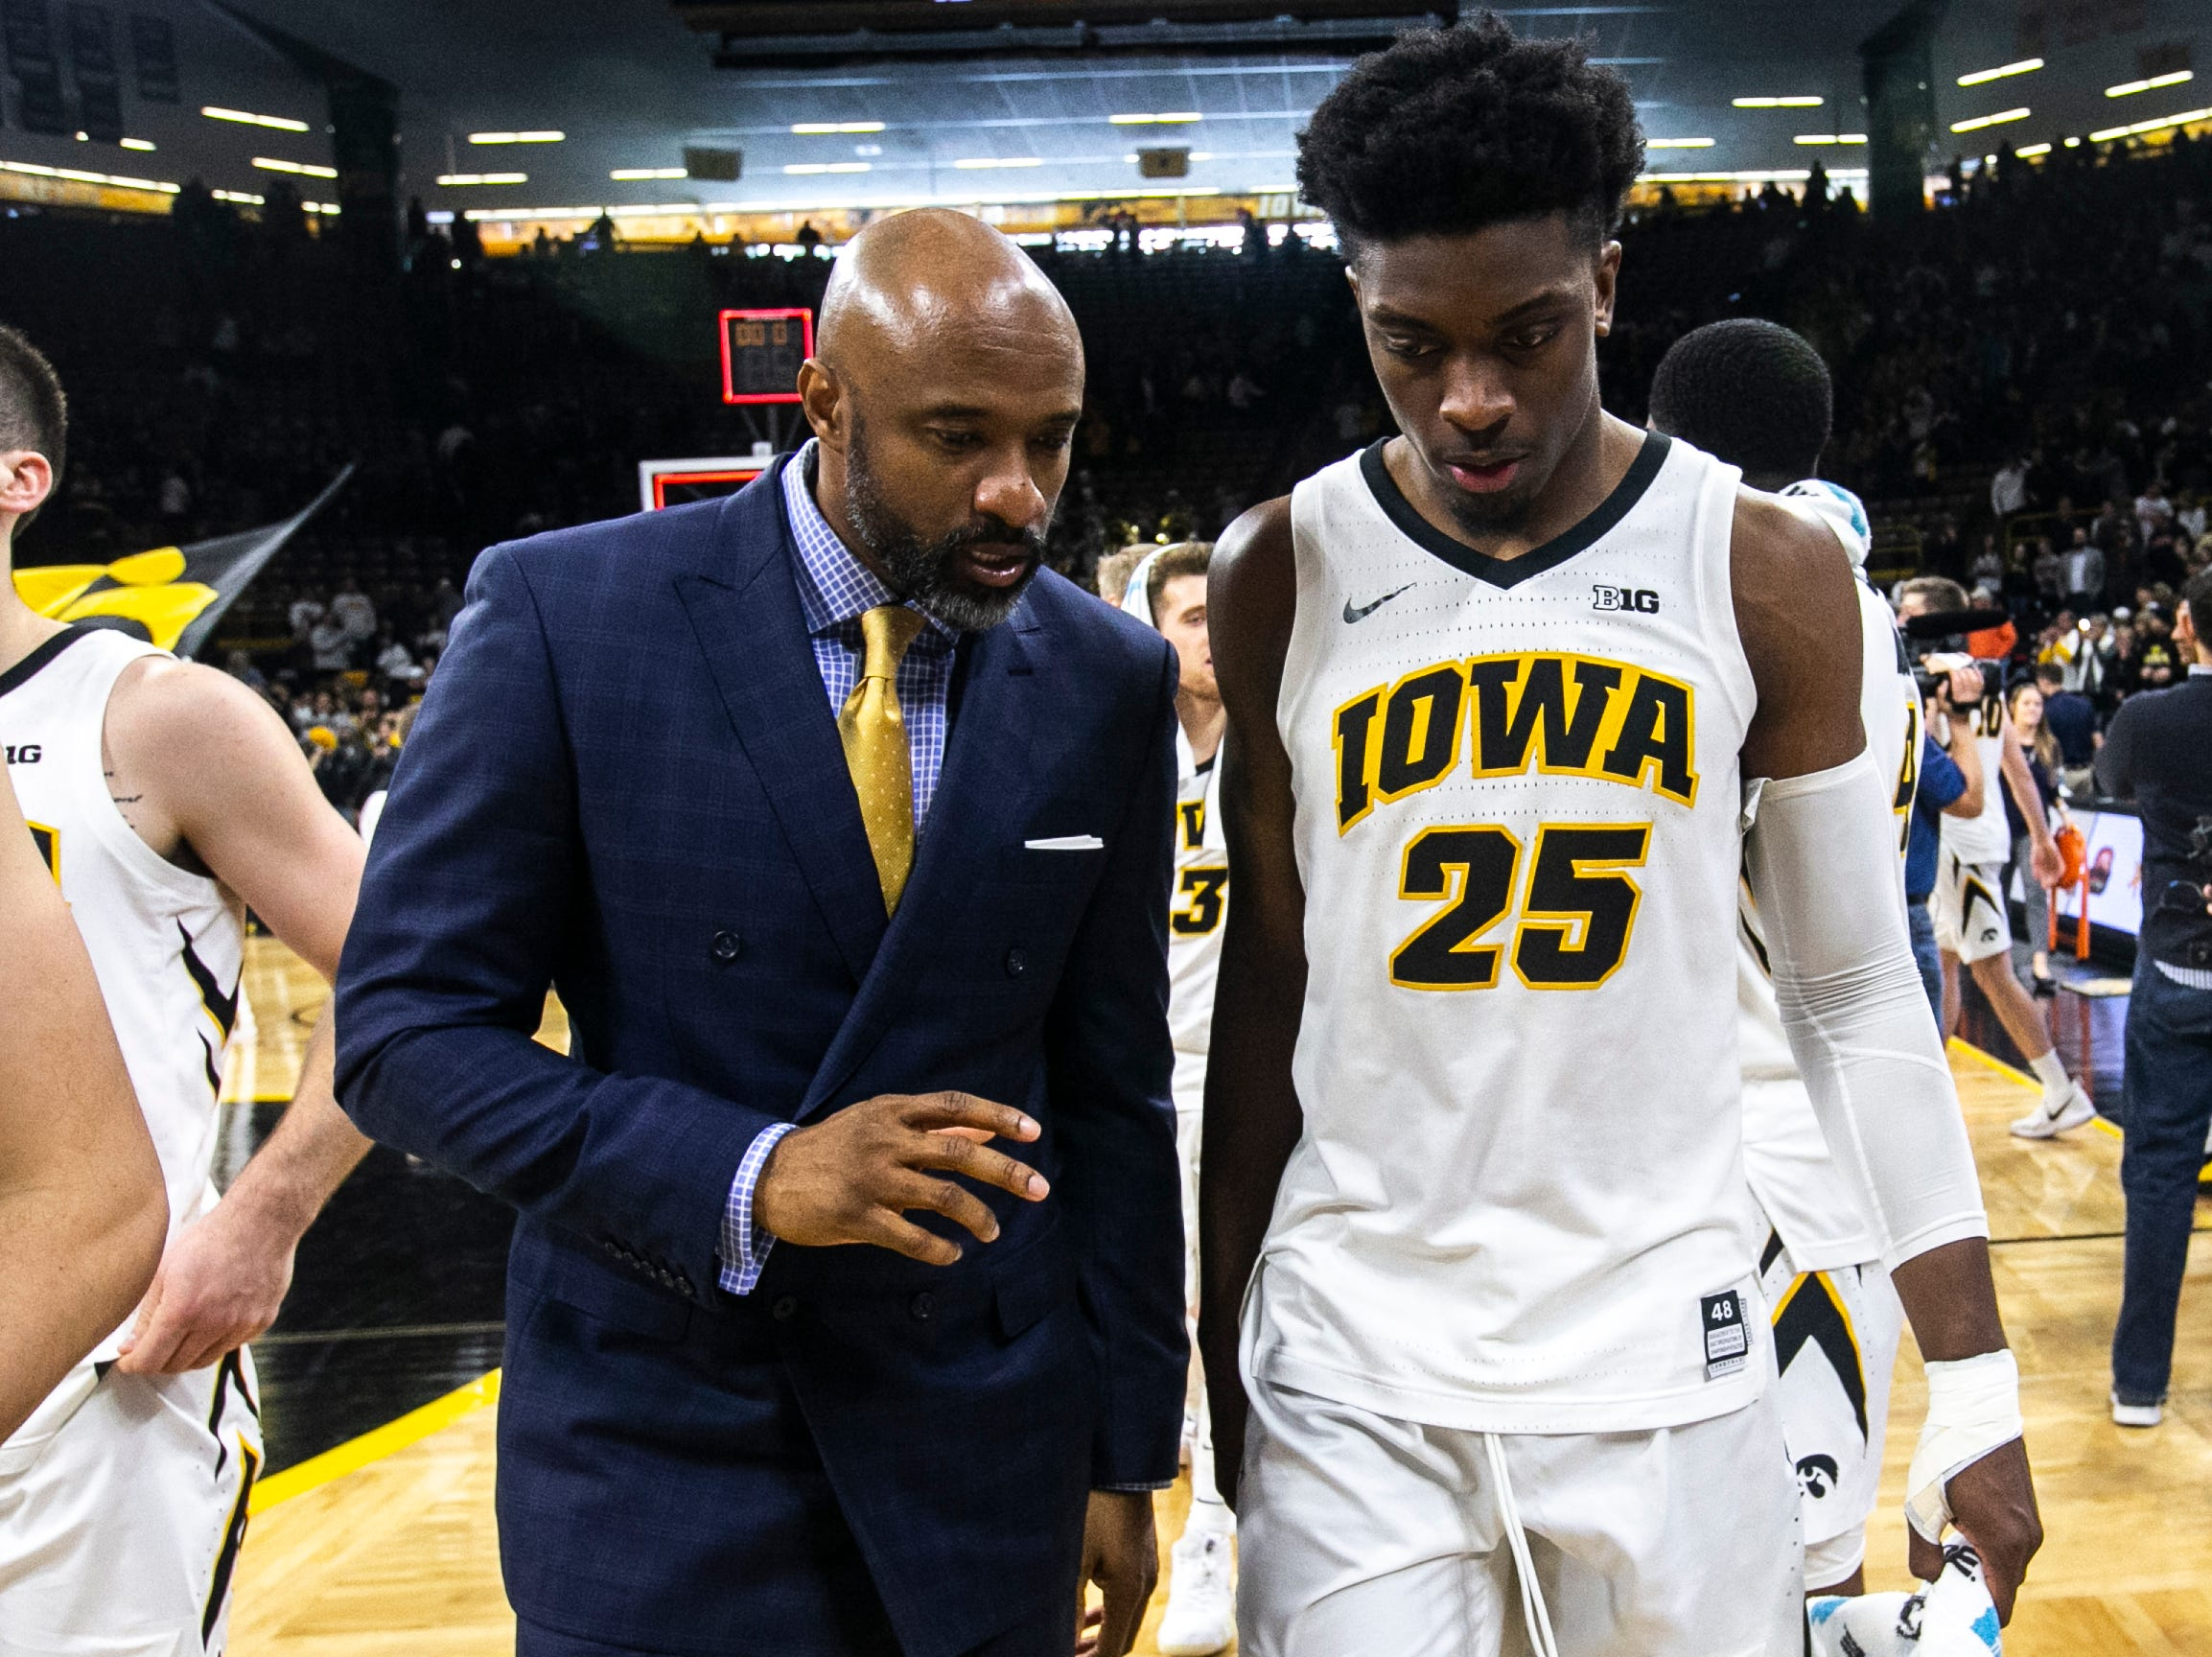 Iowa assistant coach Andrew Francis, left, talks with Iowa forward Tyler Cook (25) after a NCAA Big Ten Conference men's basketball game on Sunday, Jan. 20, 2019, at Carver-Hawkeye Arena in Iowa City, Iowa. The Hawkeyes defeated the Fighting Illini, 95-71.